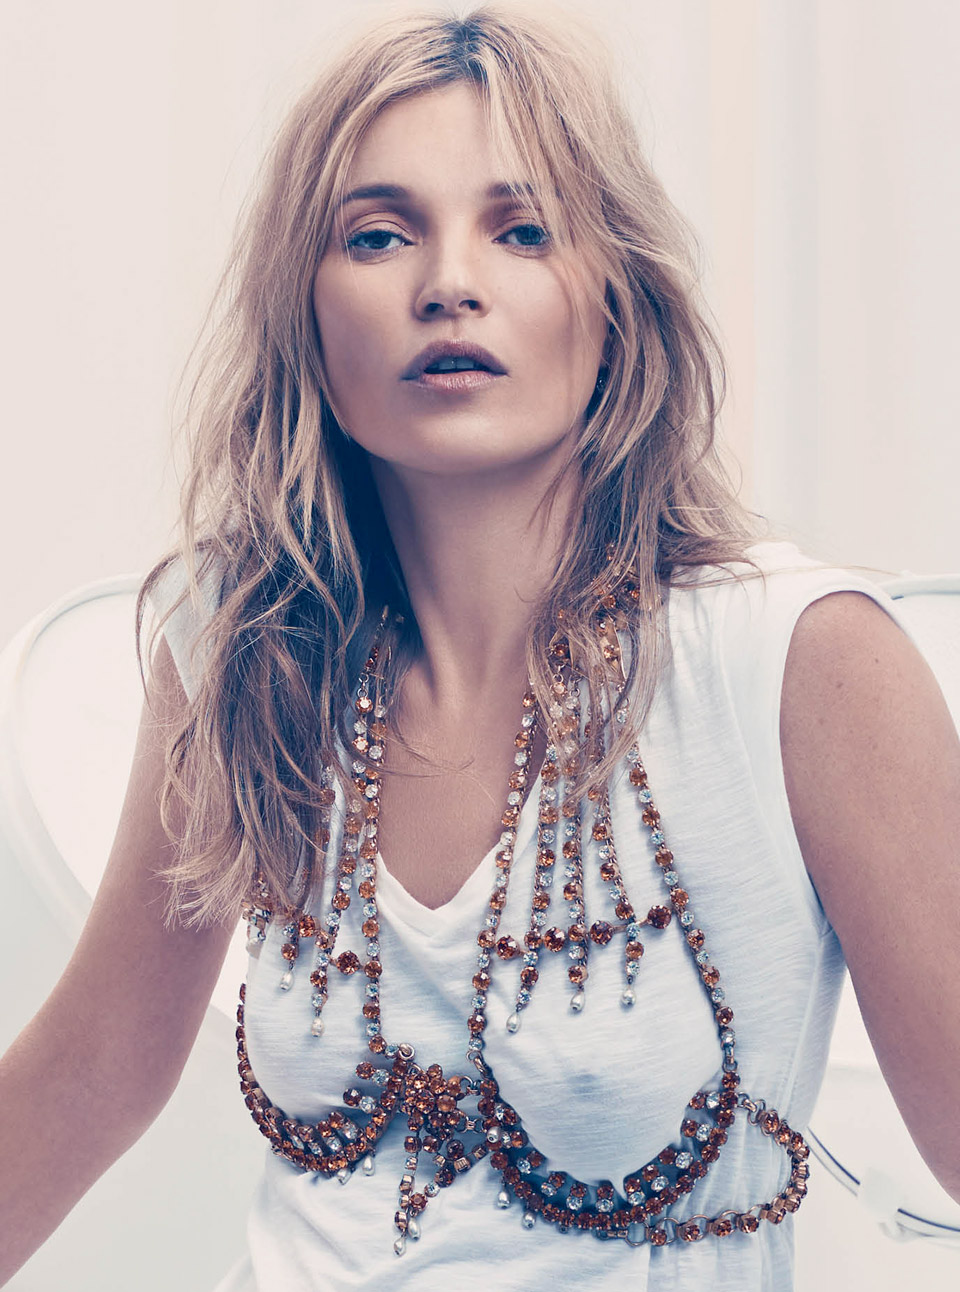 Kate Moss Is The Queen Of Cool On 37th Vogue Uk Cover: The Best Ever Kate Moss Quotes